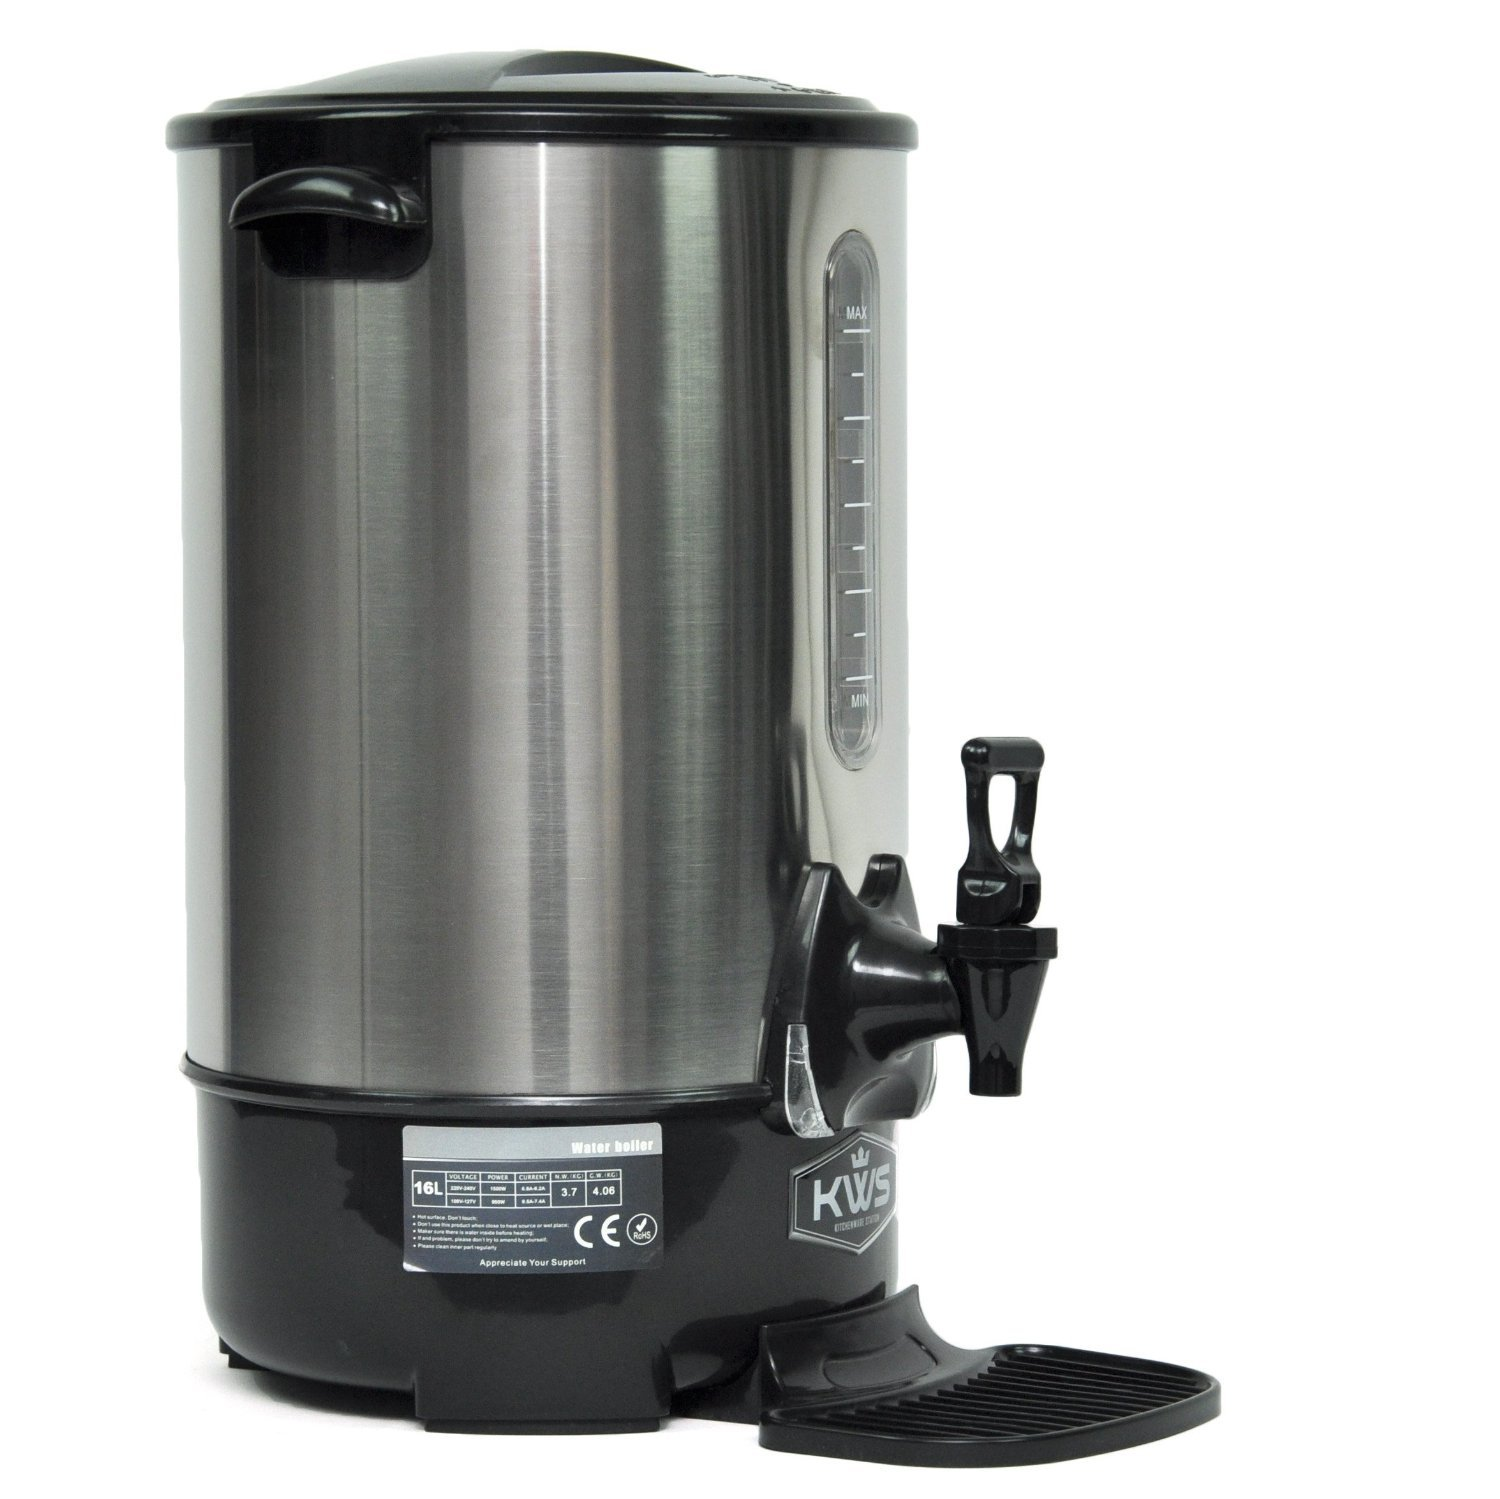 Double Stainless Steel Layer Commercial Electric Hot Water and Warmer Dispenser Kettle Boiler KWS-WB-16L (Silver / 4.3 Gallon / 67 Cups)